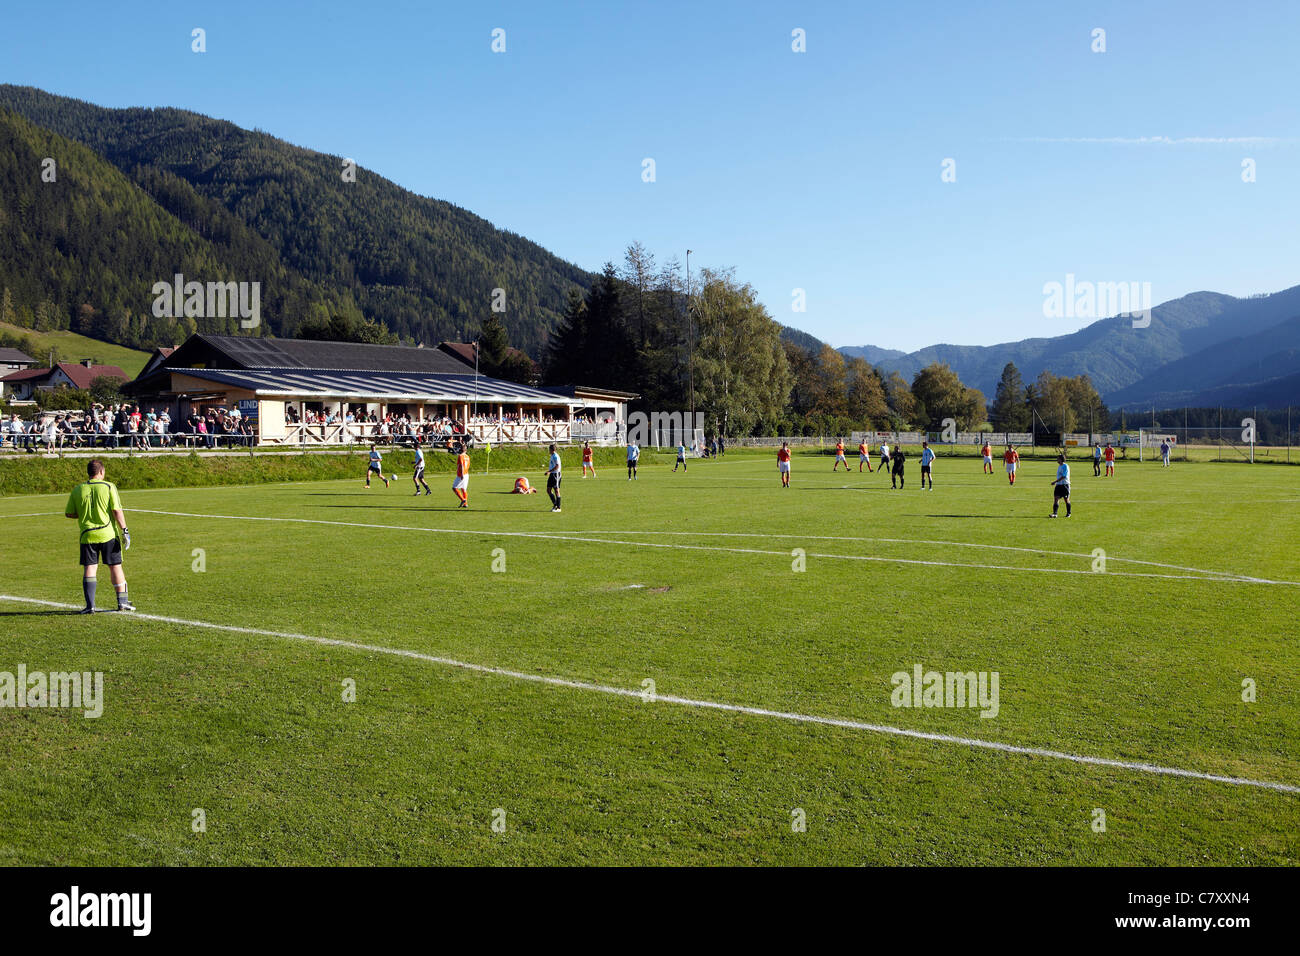 football pitch with mountain view, Austria - Stock Image